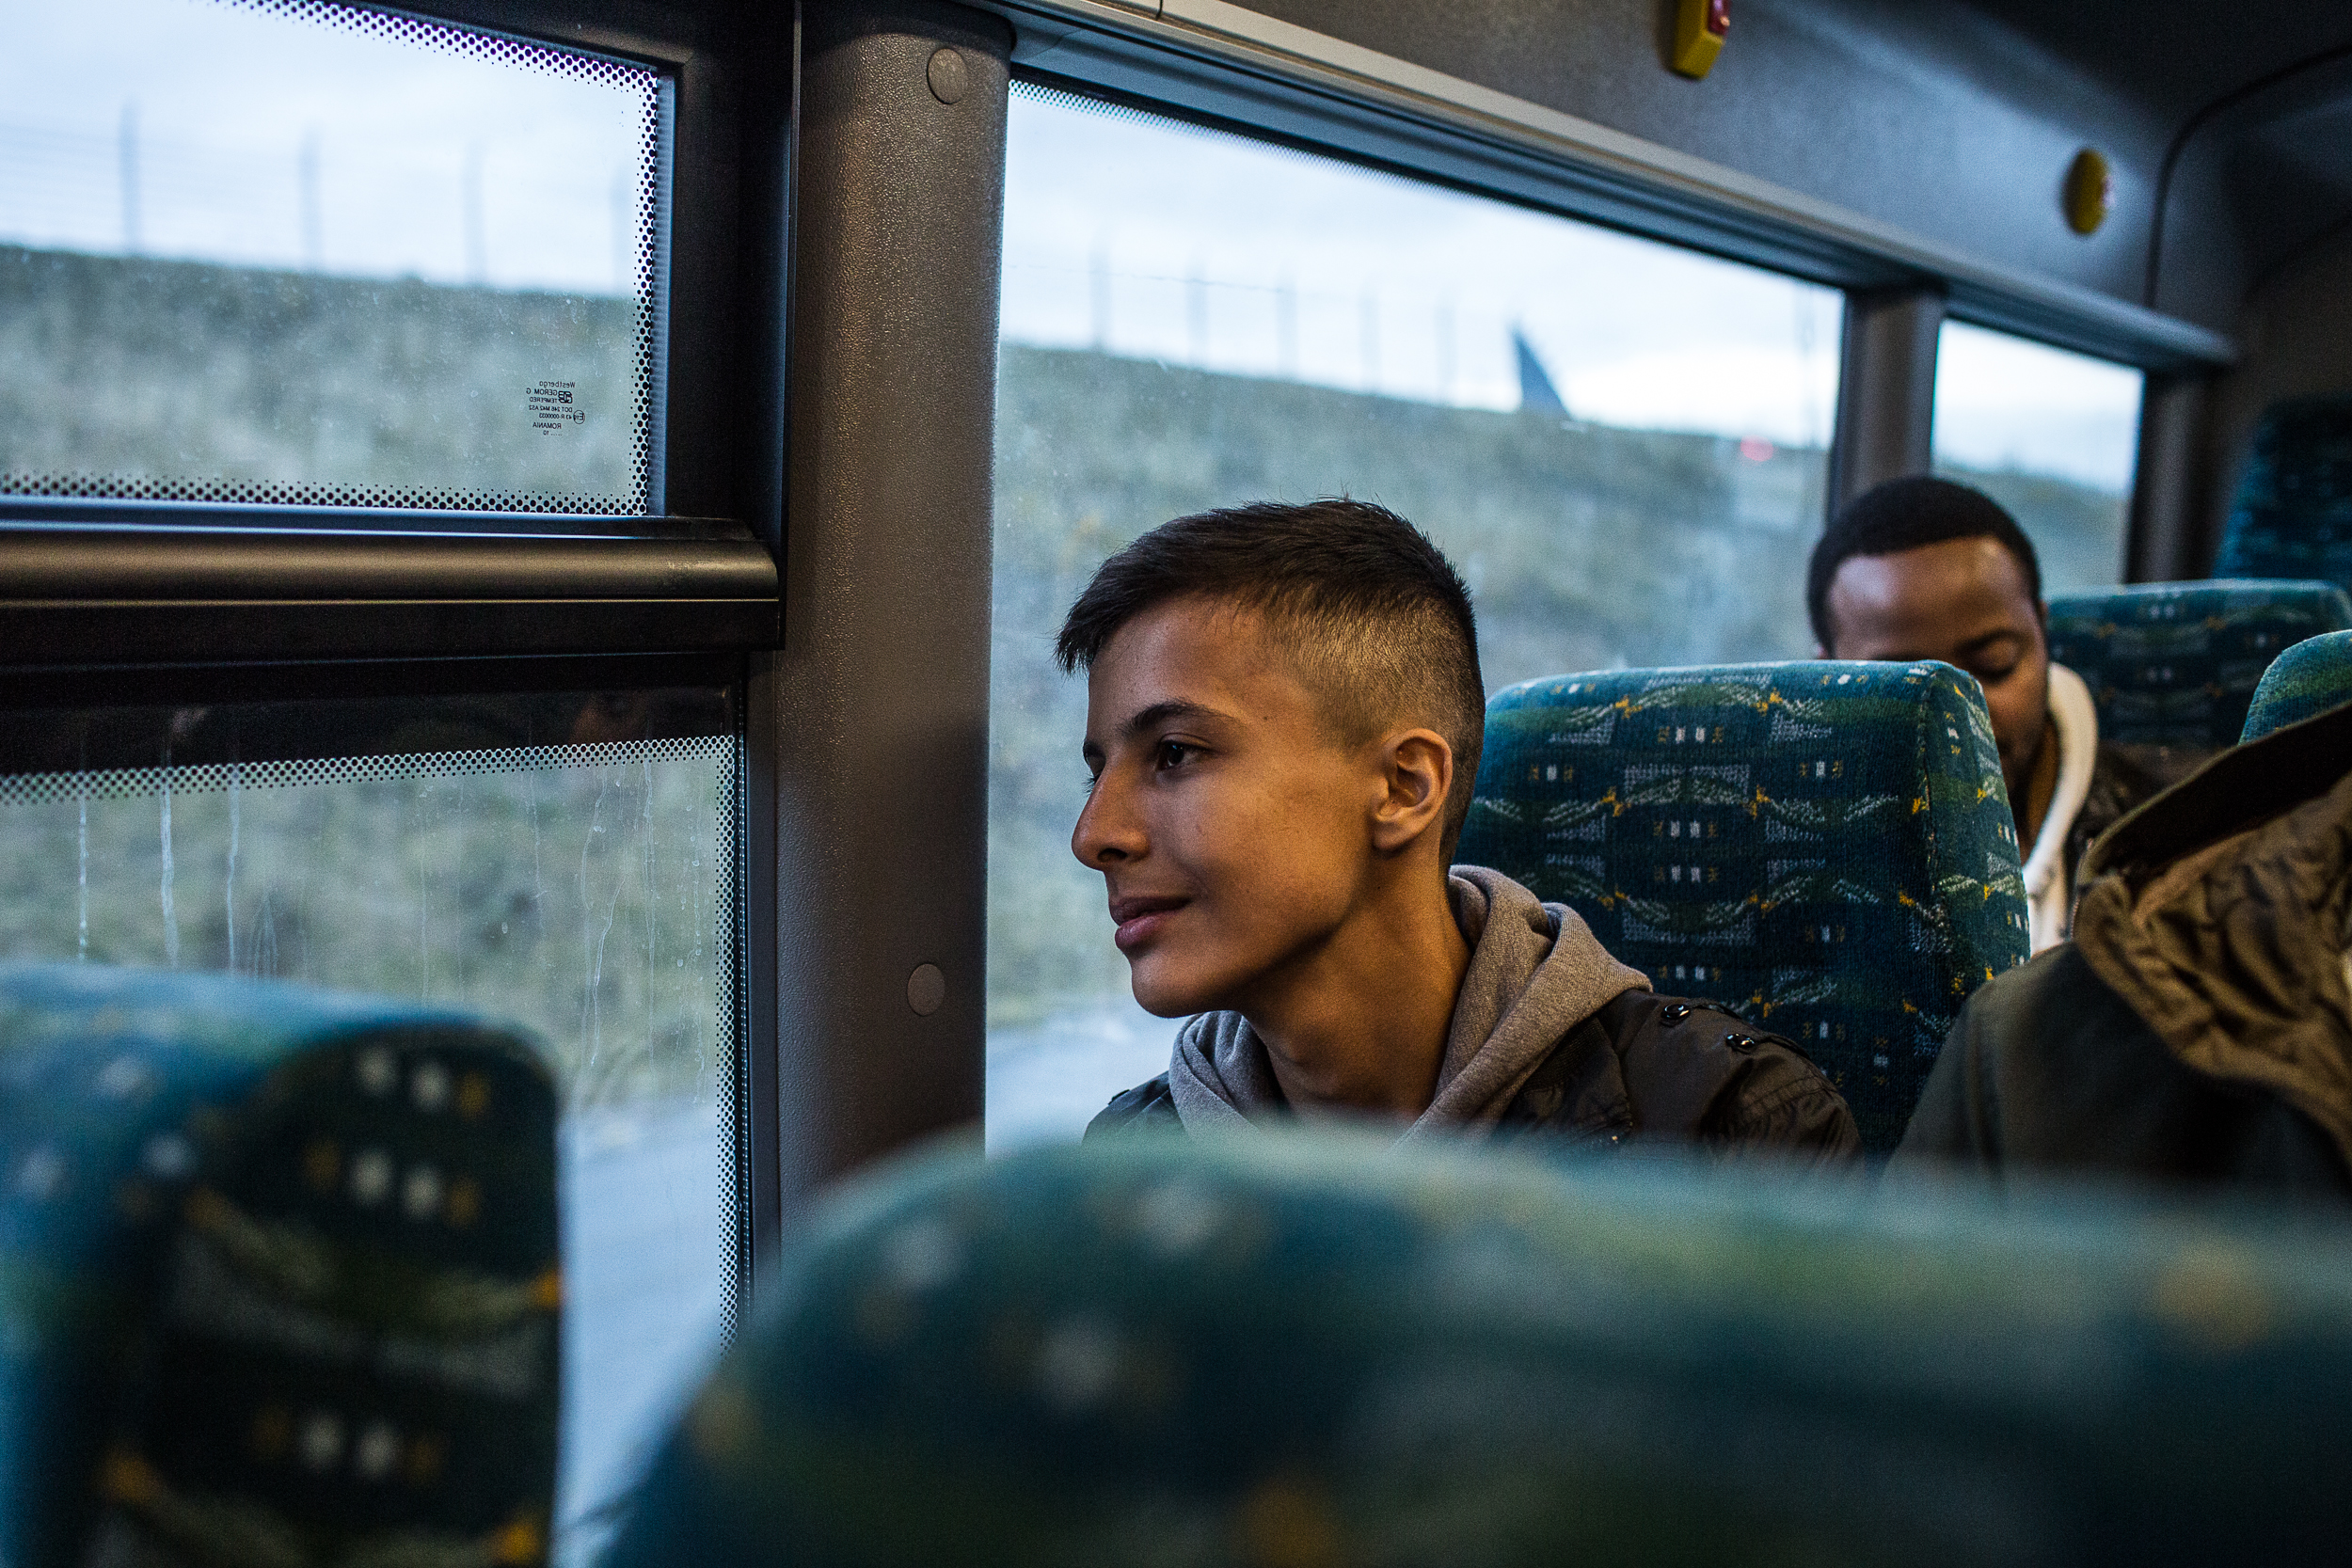 Syrians asylum seeker, Nawras Soukhta travel by train during a three-year journey to escape his country and live a better life in Sweden.